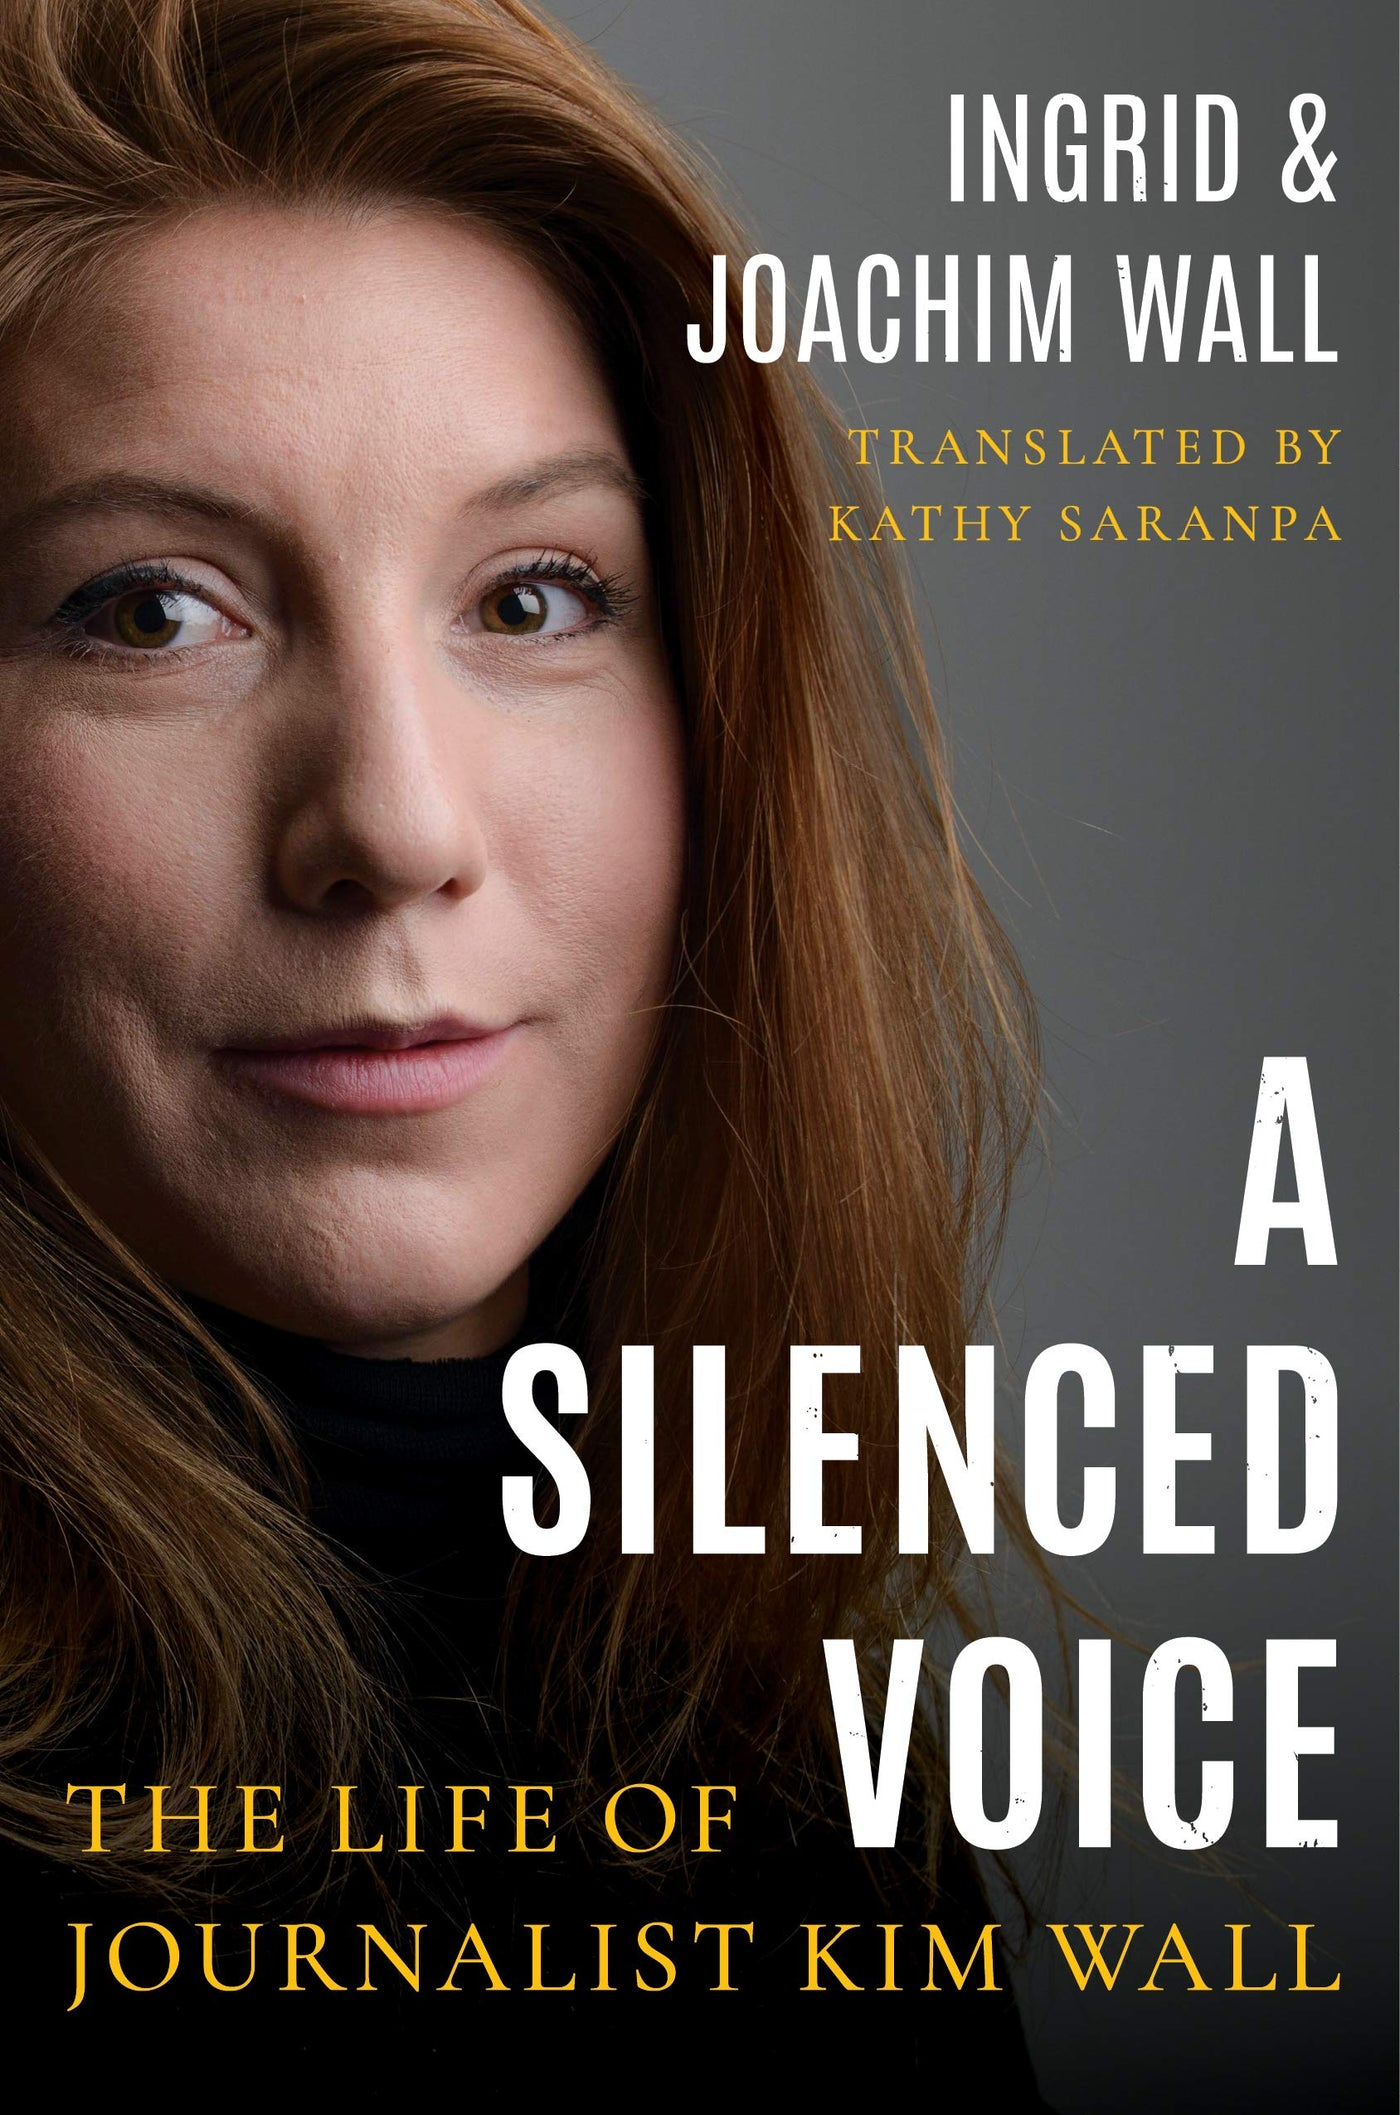 A Silenced Voice: The Life of Journalist Kim Wall by Ingrid and Joachim Wall